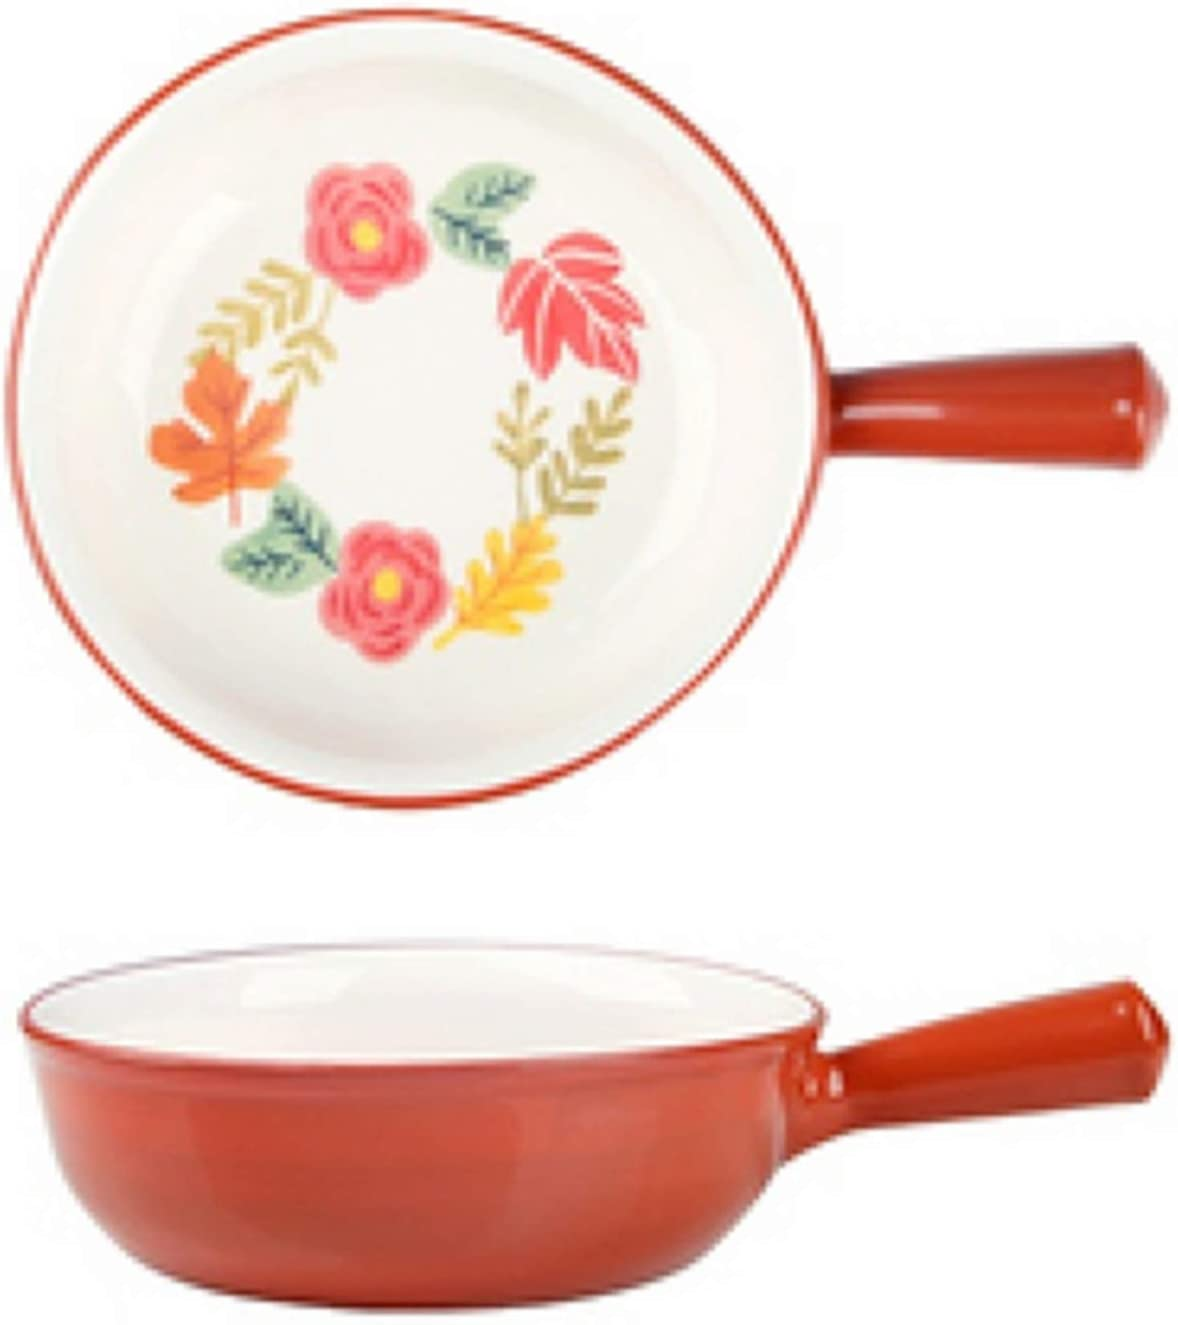 French Onion Soup Bowls With Handles, 30 Ounce Baking Serving for Soup, chili, beef stew, Set of 2 (Red)